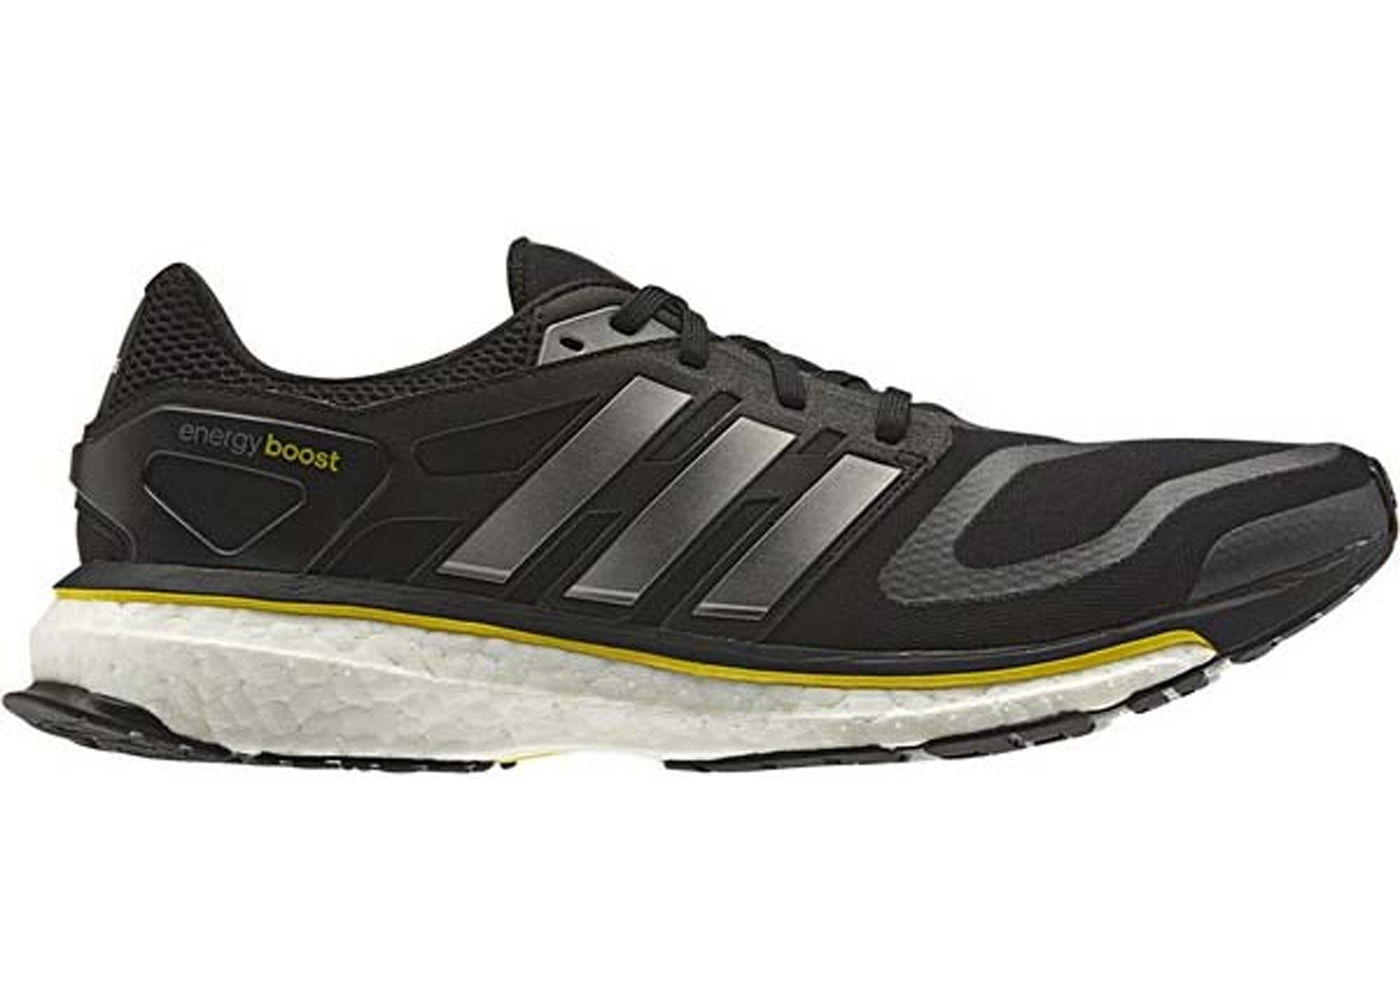 buy online 37331 ebf7f adidas Energy Boost OG 5th Anniversary Black Yellow